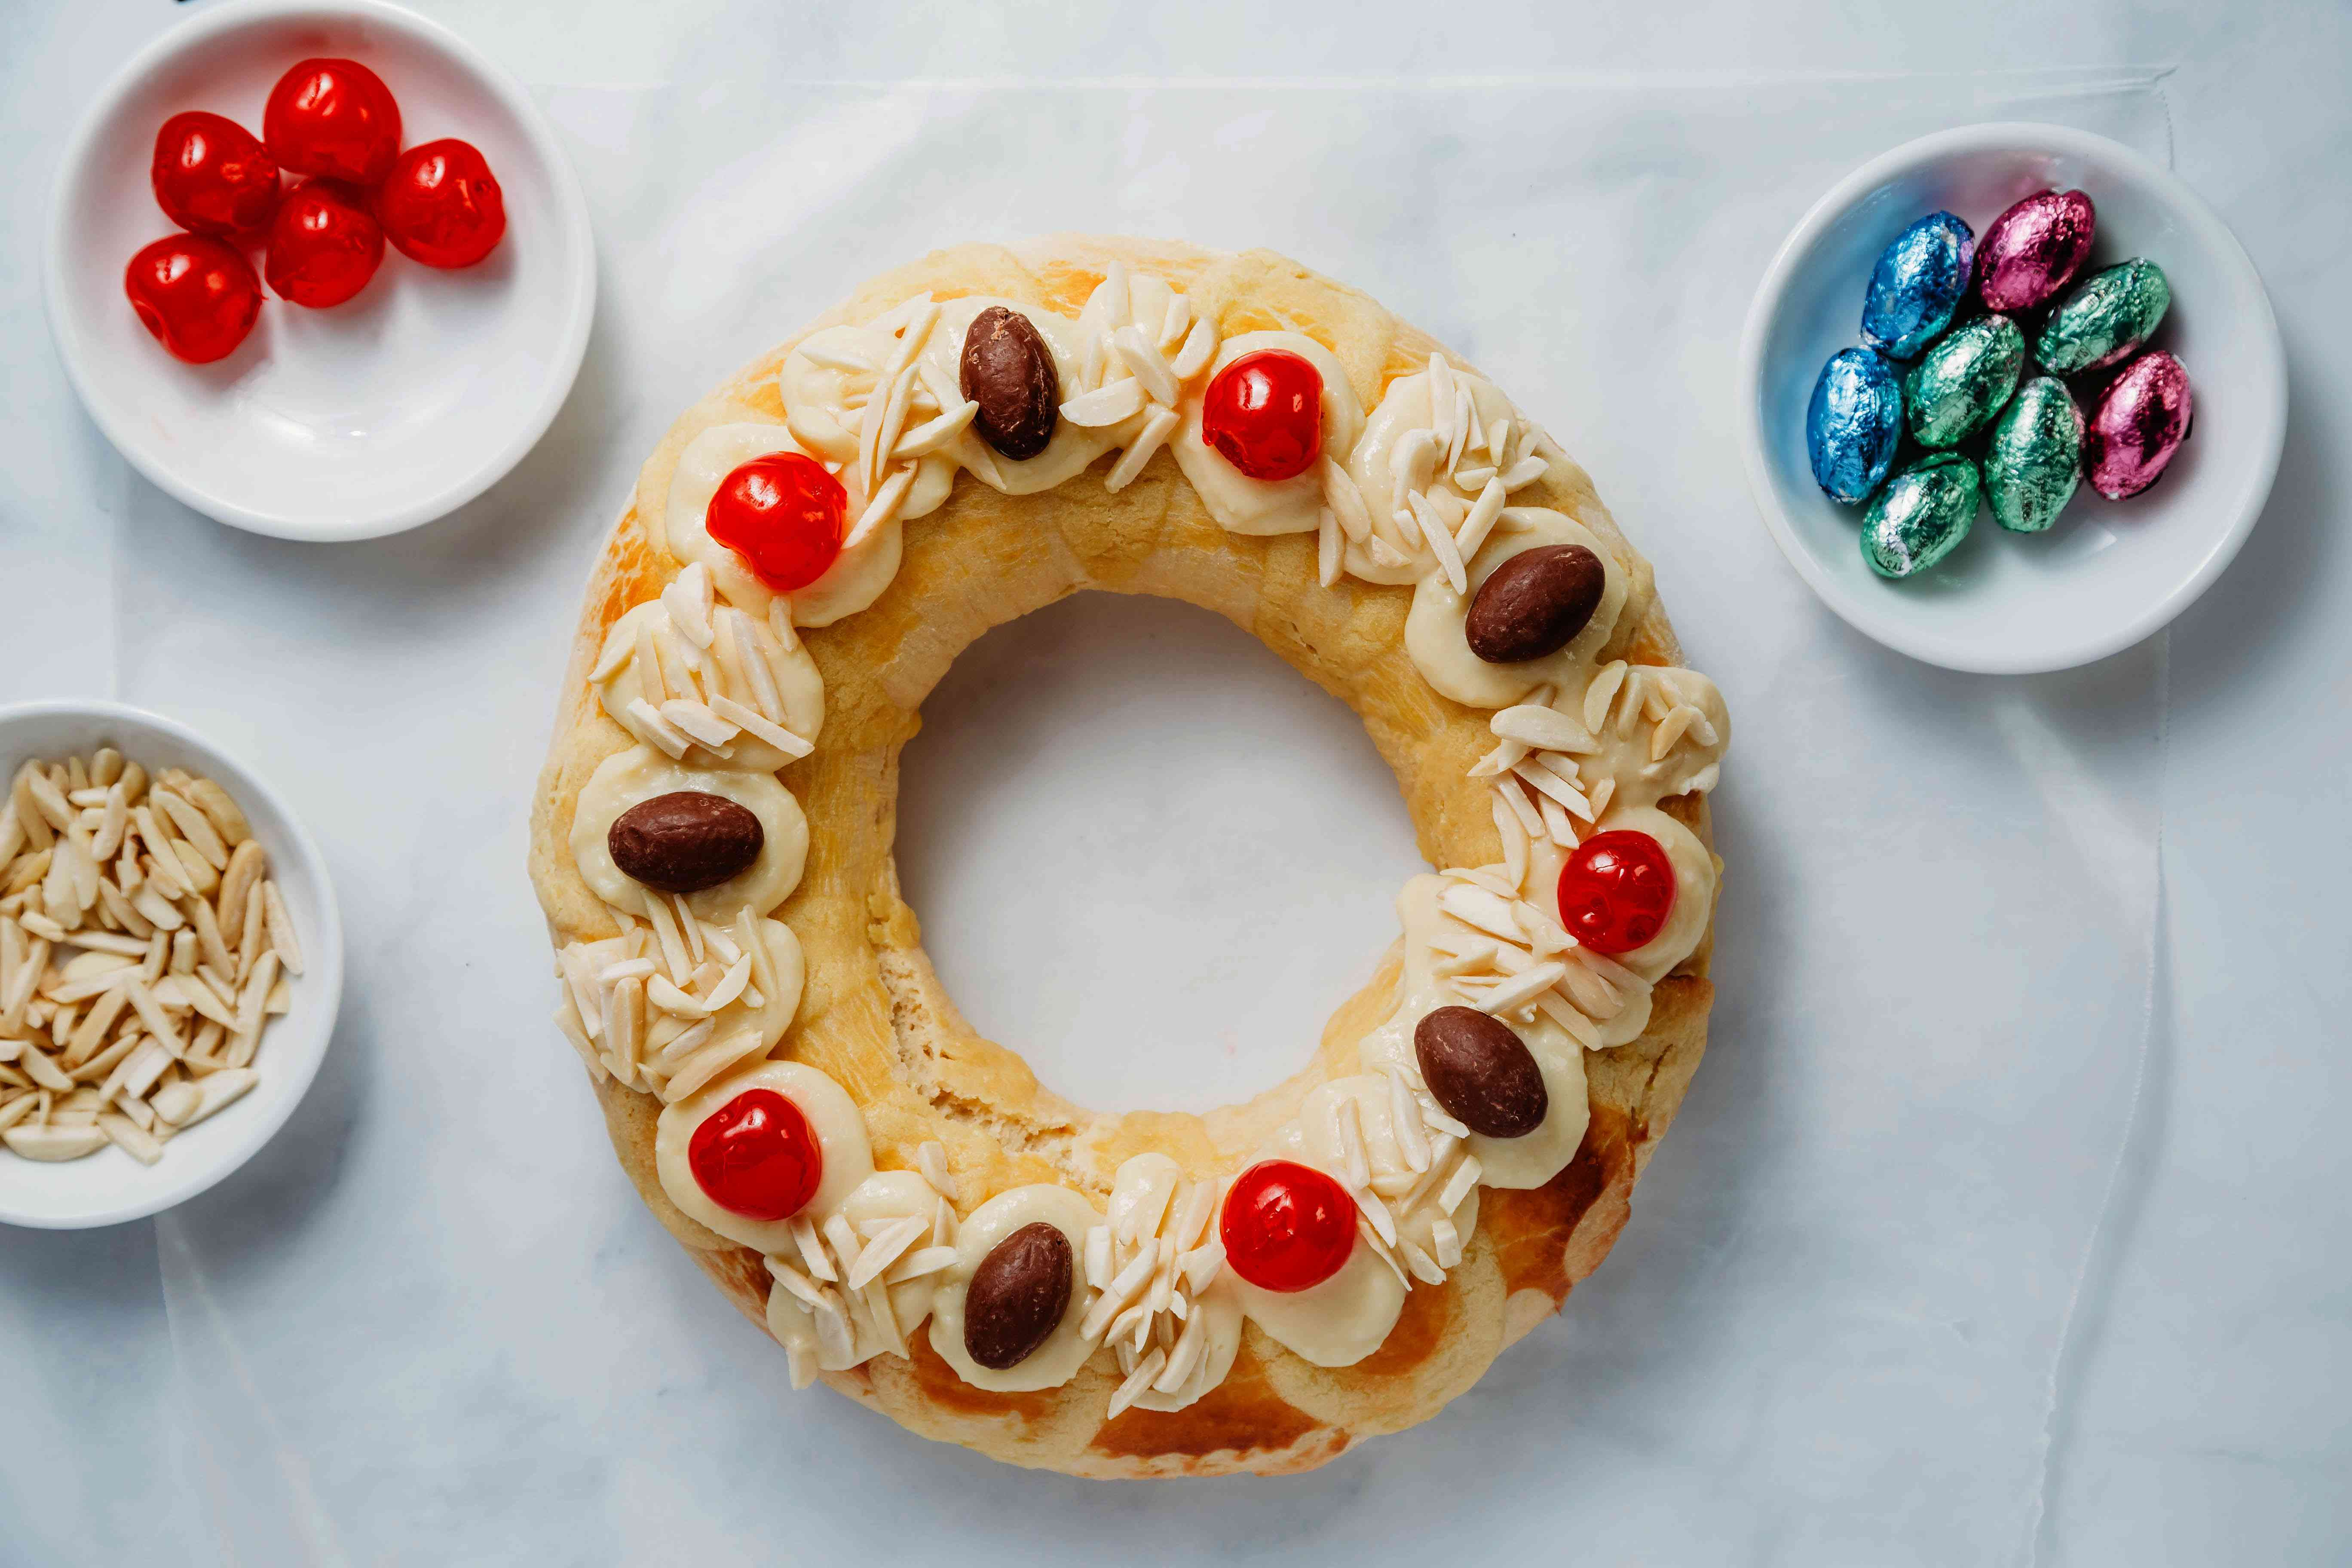 finished cake decorated with more pastry cream, cherries, almonds, candies